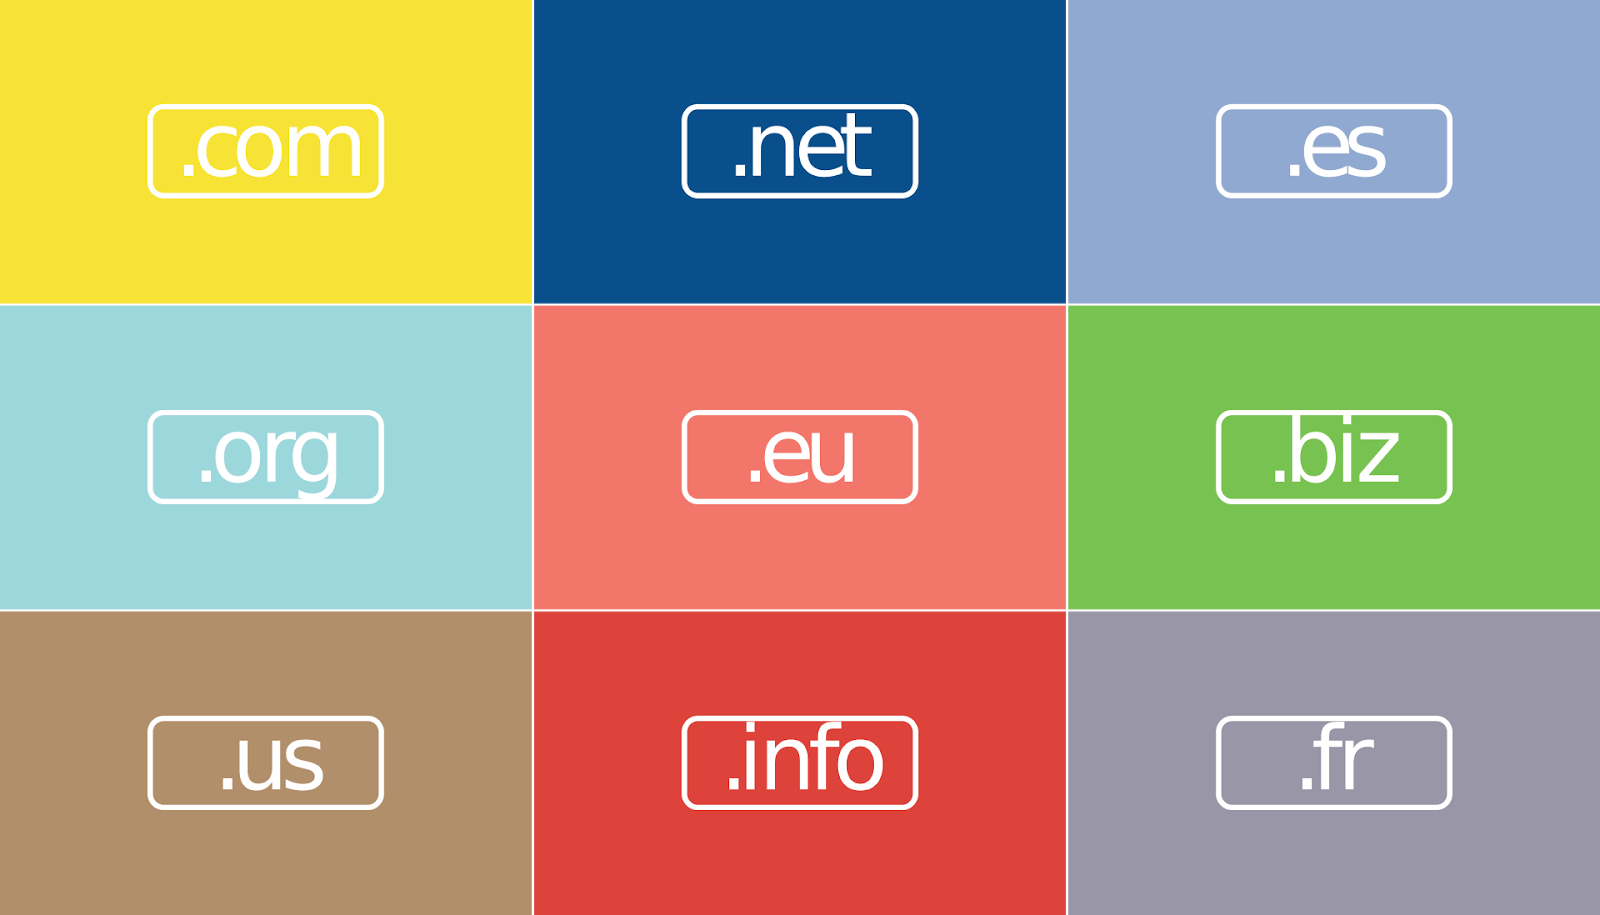 Image showing various domain extentions.